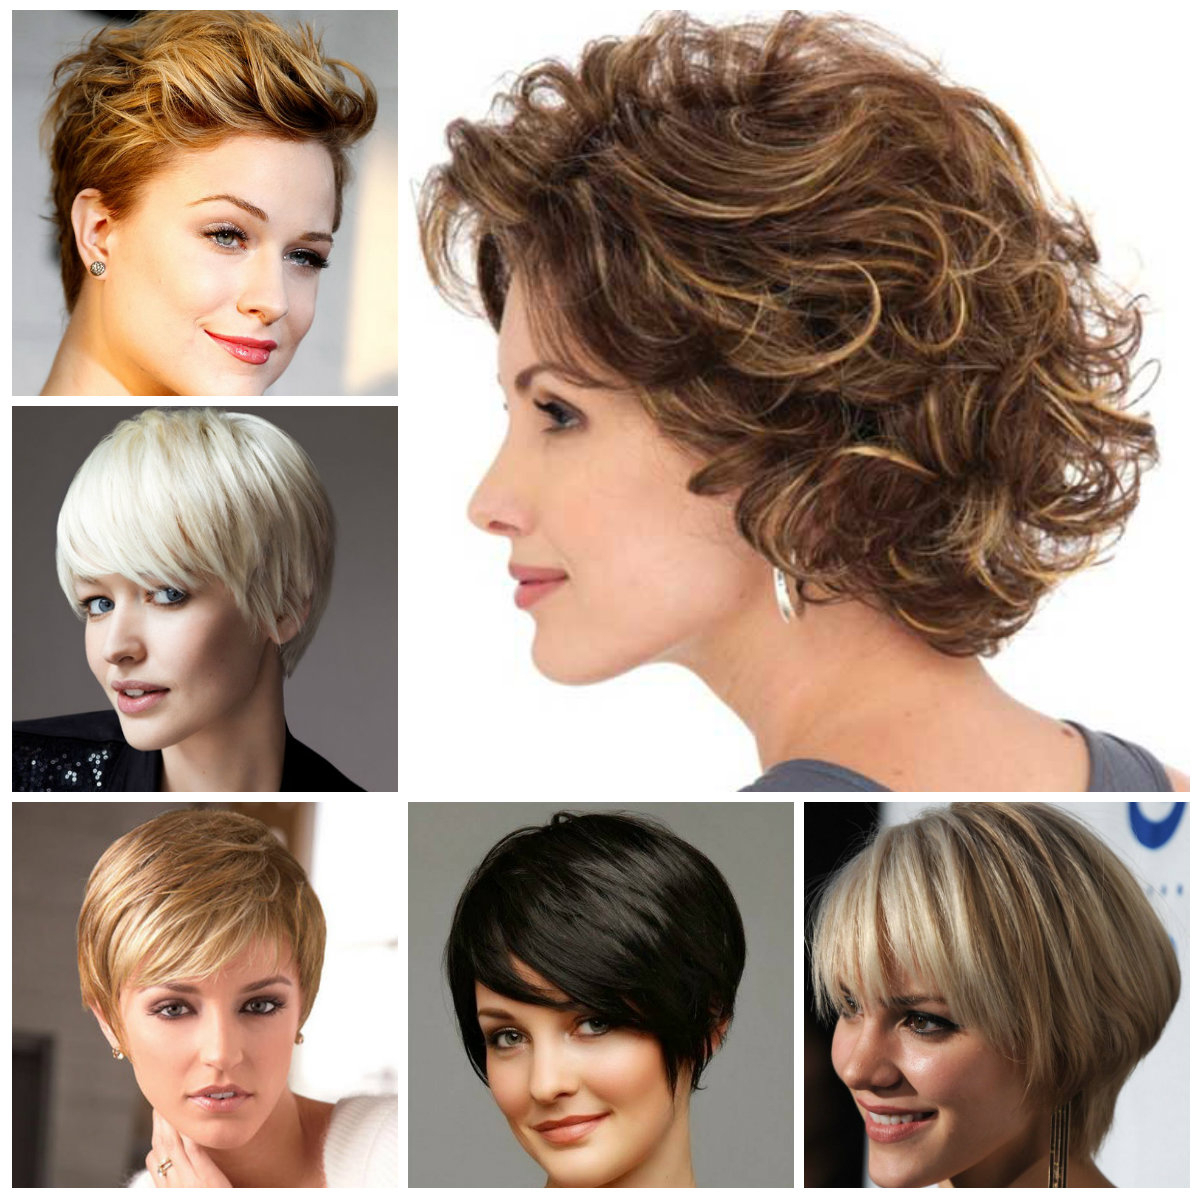 Short Layered Hairstyle Ideas For 2019 | Hairstyles For Women 2019 With Regard To Curly Golden Brown Pixie Hairstyles (View 15 of 20)